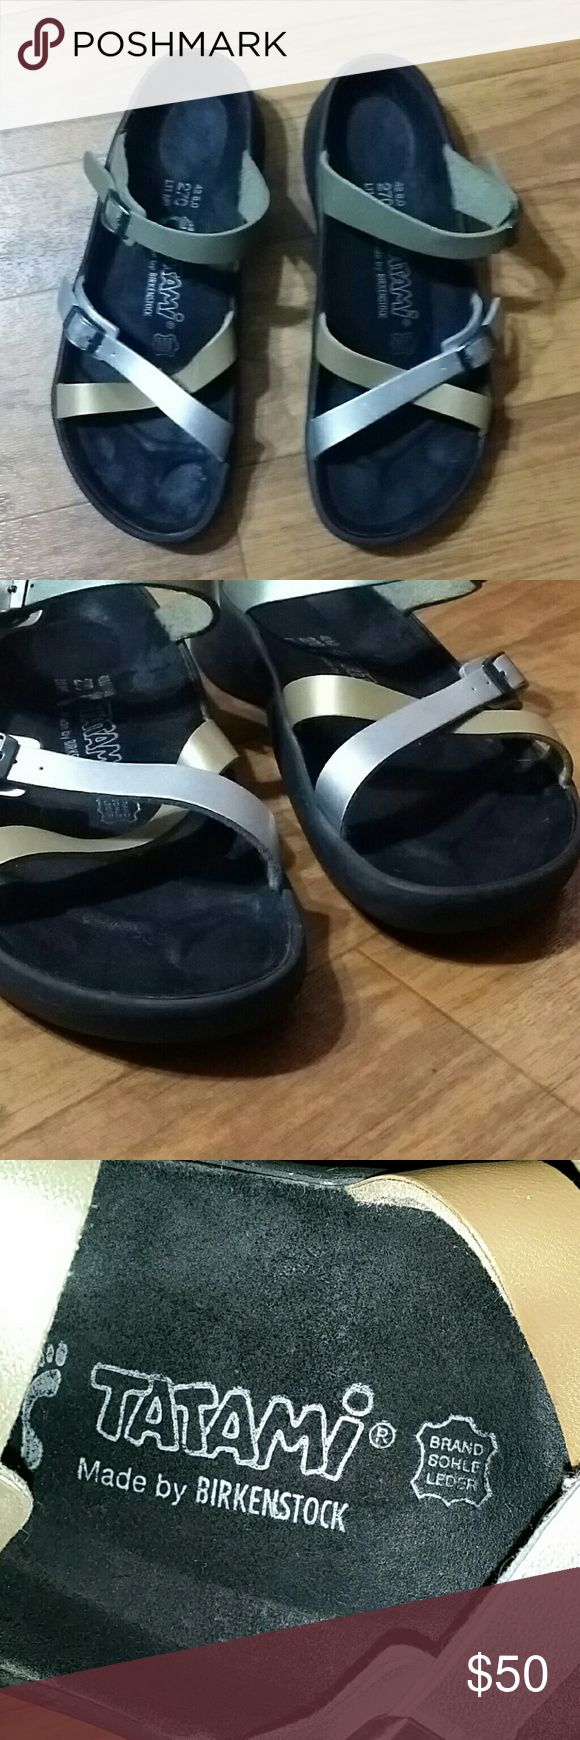 TATAMI by BIRKENSTOCK   sandals Sandals with 3 straps, two of them have adjustable buckles.  Strap colors are gold, silver and olive green.  Ladies size 11/men's size 9 In great used condition. See pictures Birkenstock Shoes Sandals